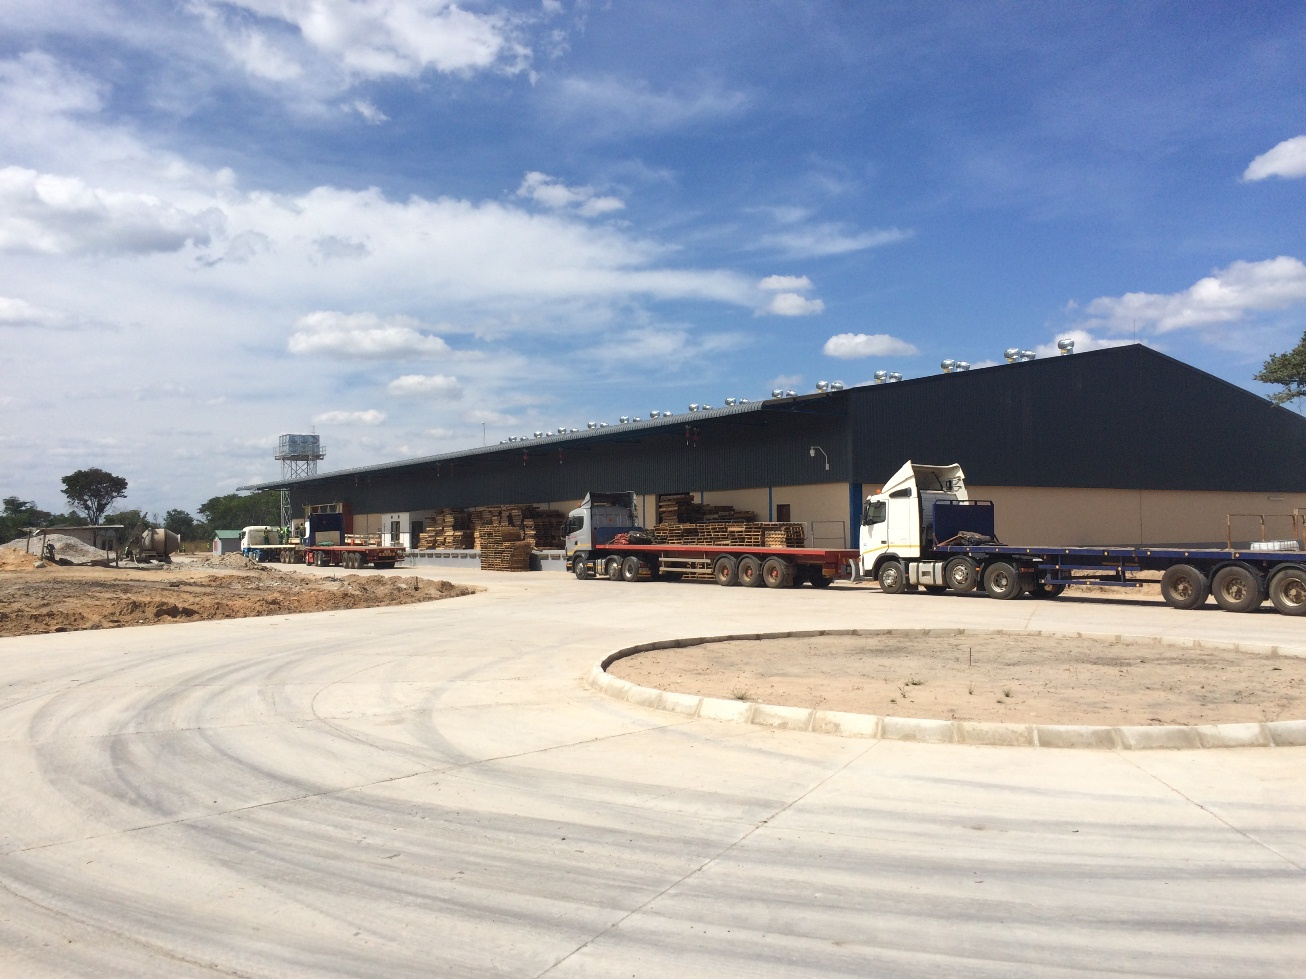 Concrete roundabout and warehouse